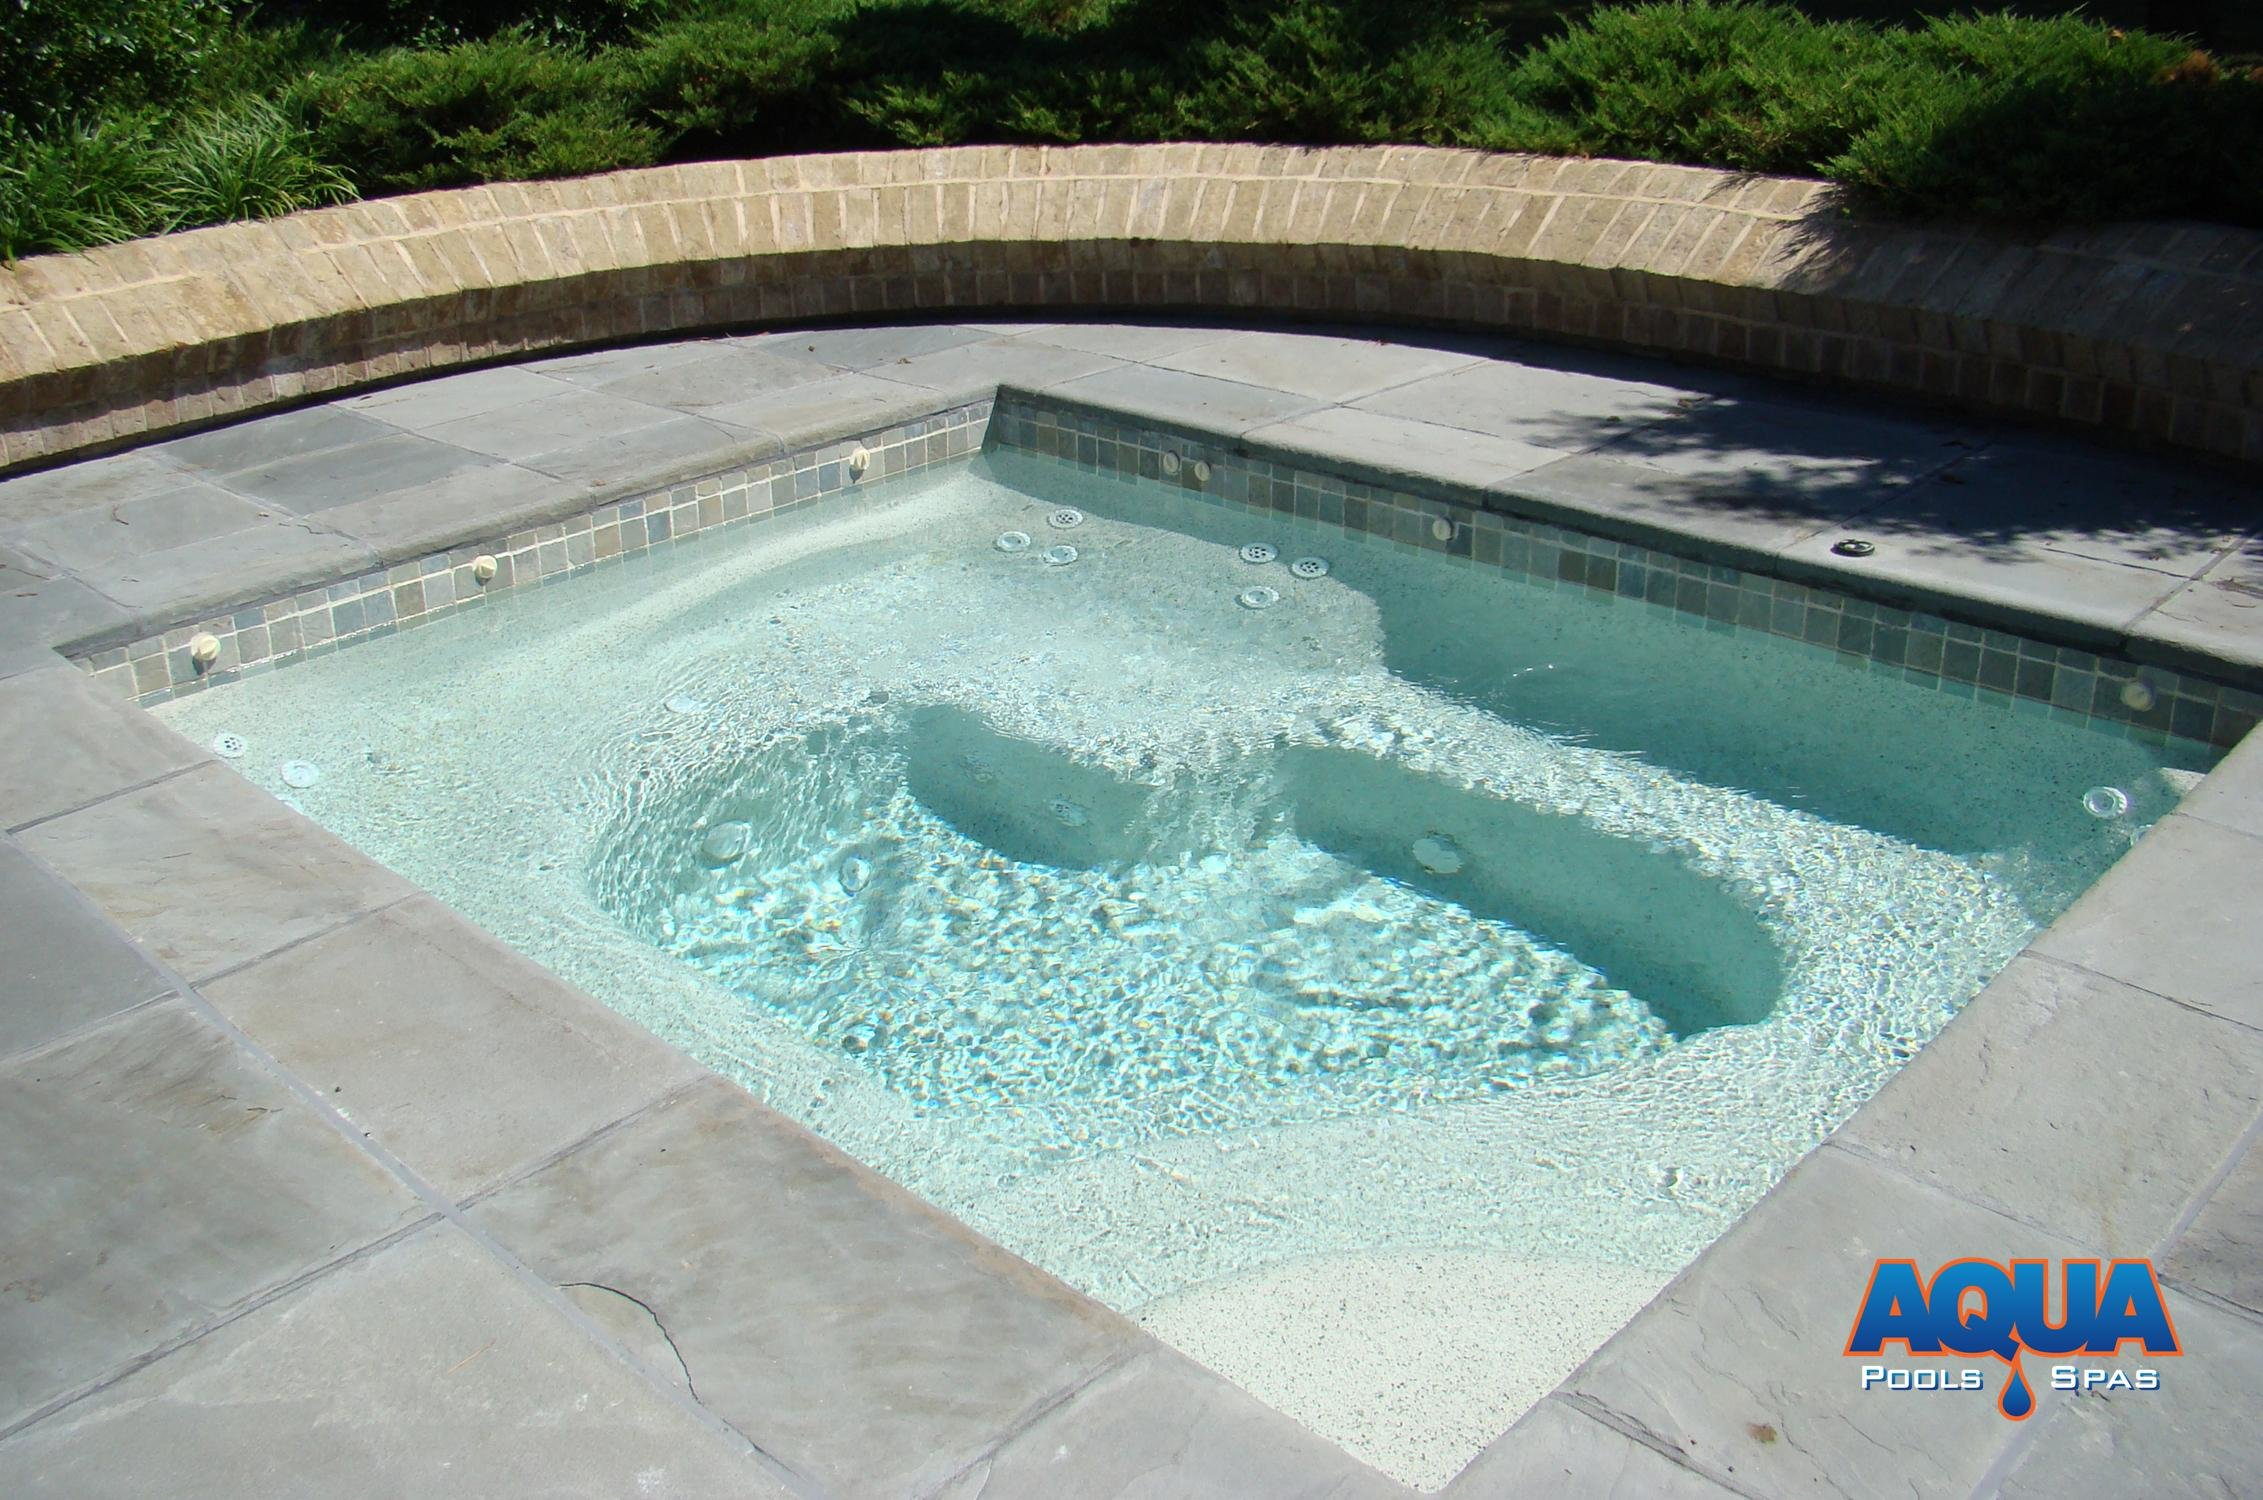 Jacuzzi Pool Covers Custom Spas Custom Gunite Hot Tubs Aqua Pools And Spas